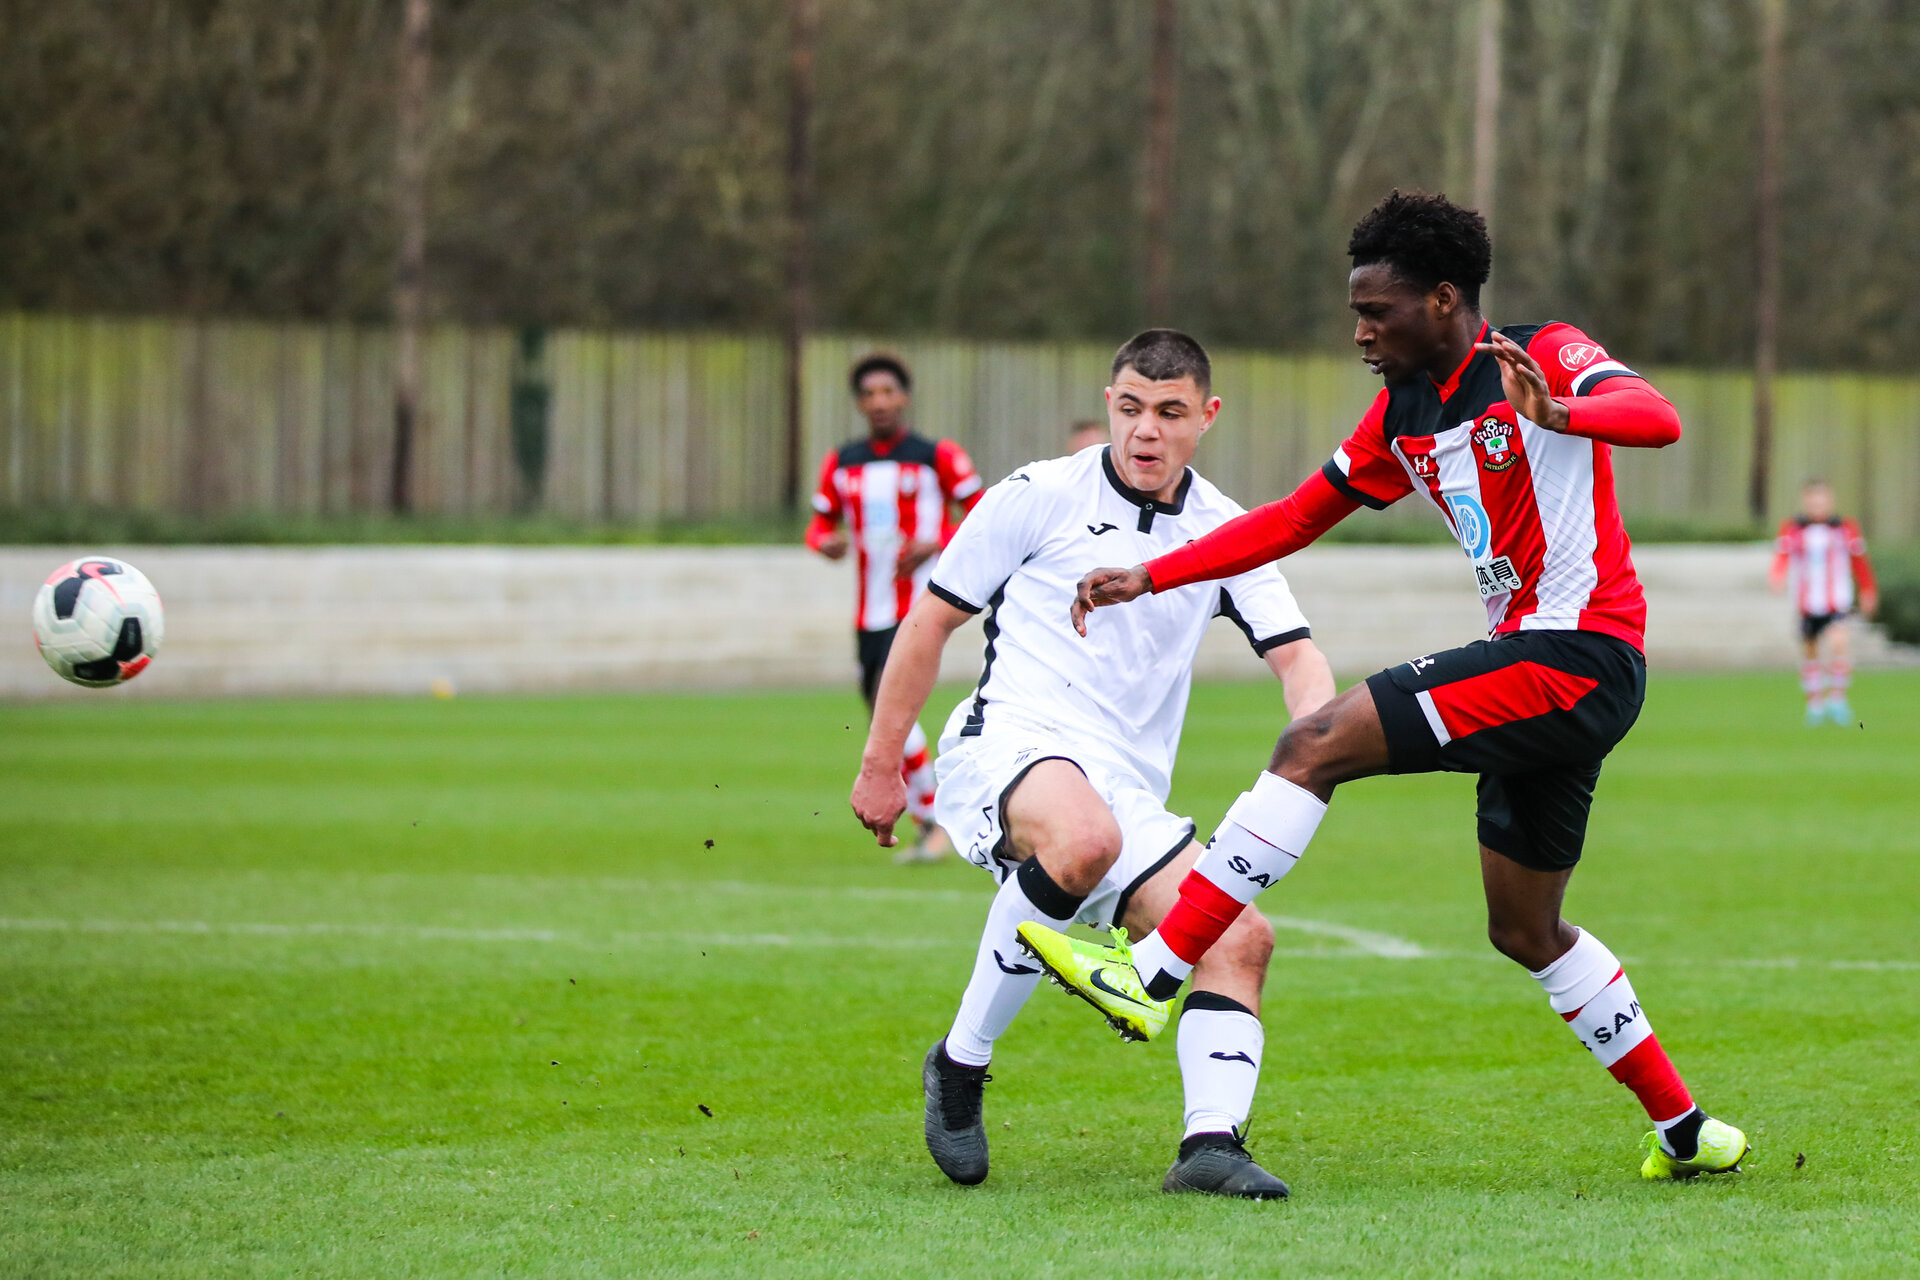 SOUTHAMPTON, ENGLAND - JANUARY 23: during the Barclays Under 18 Premier League match between Southampton FC and Swansea City at the Staplewood Campus on January 23, 2020 in Southampton, England